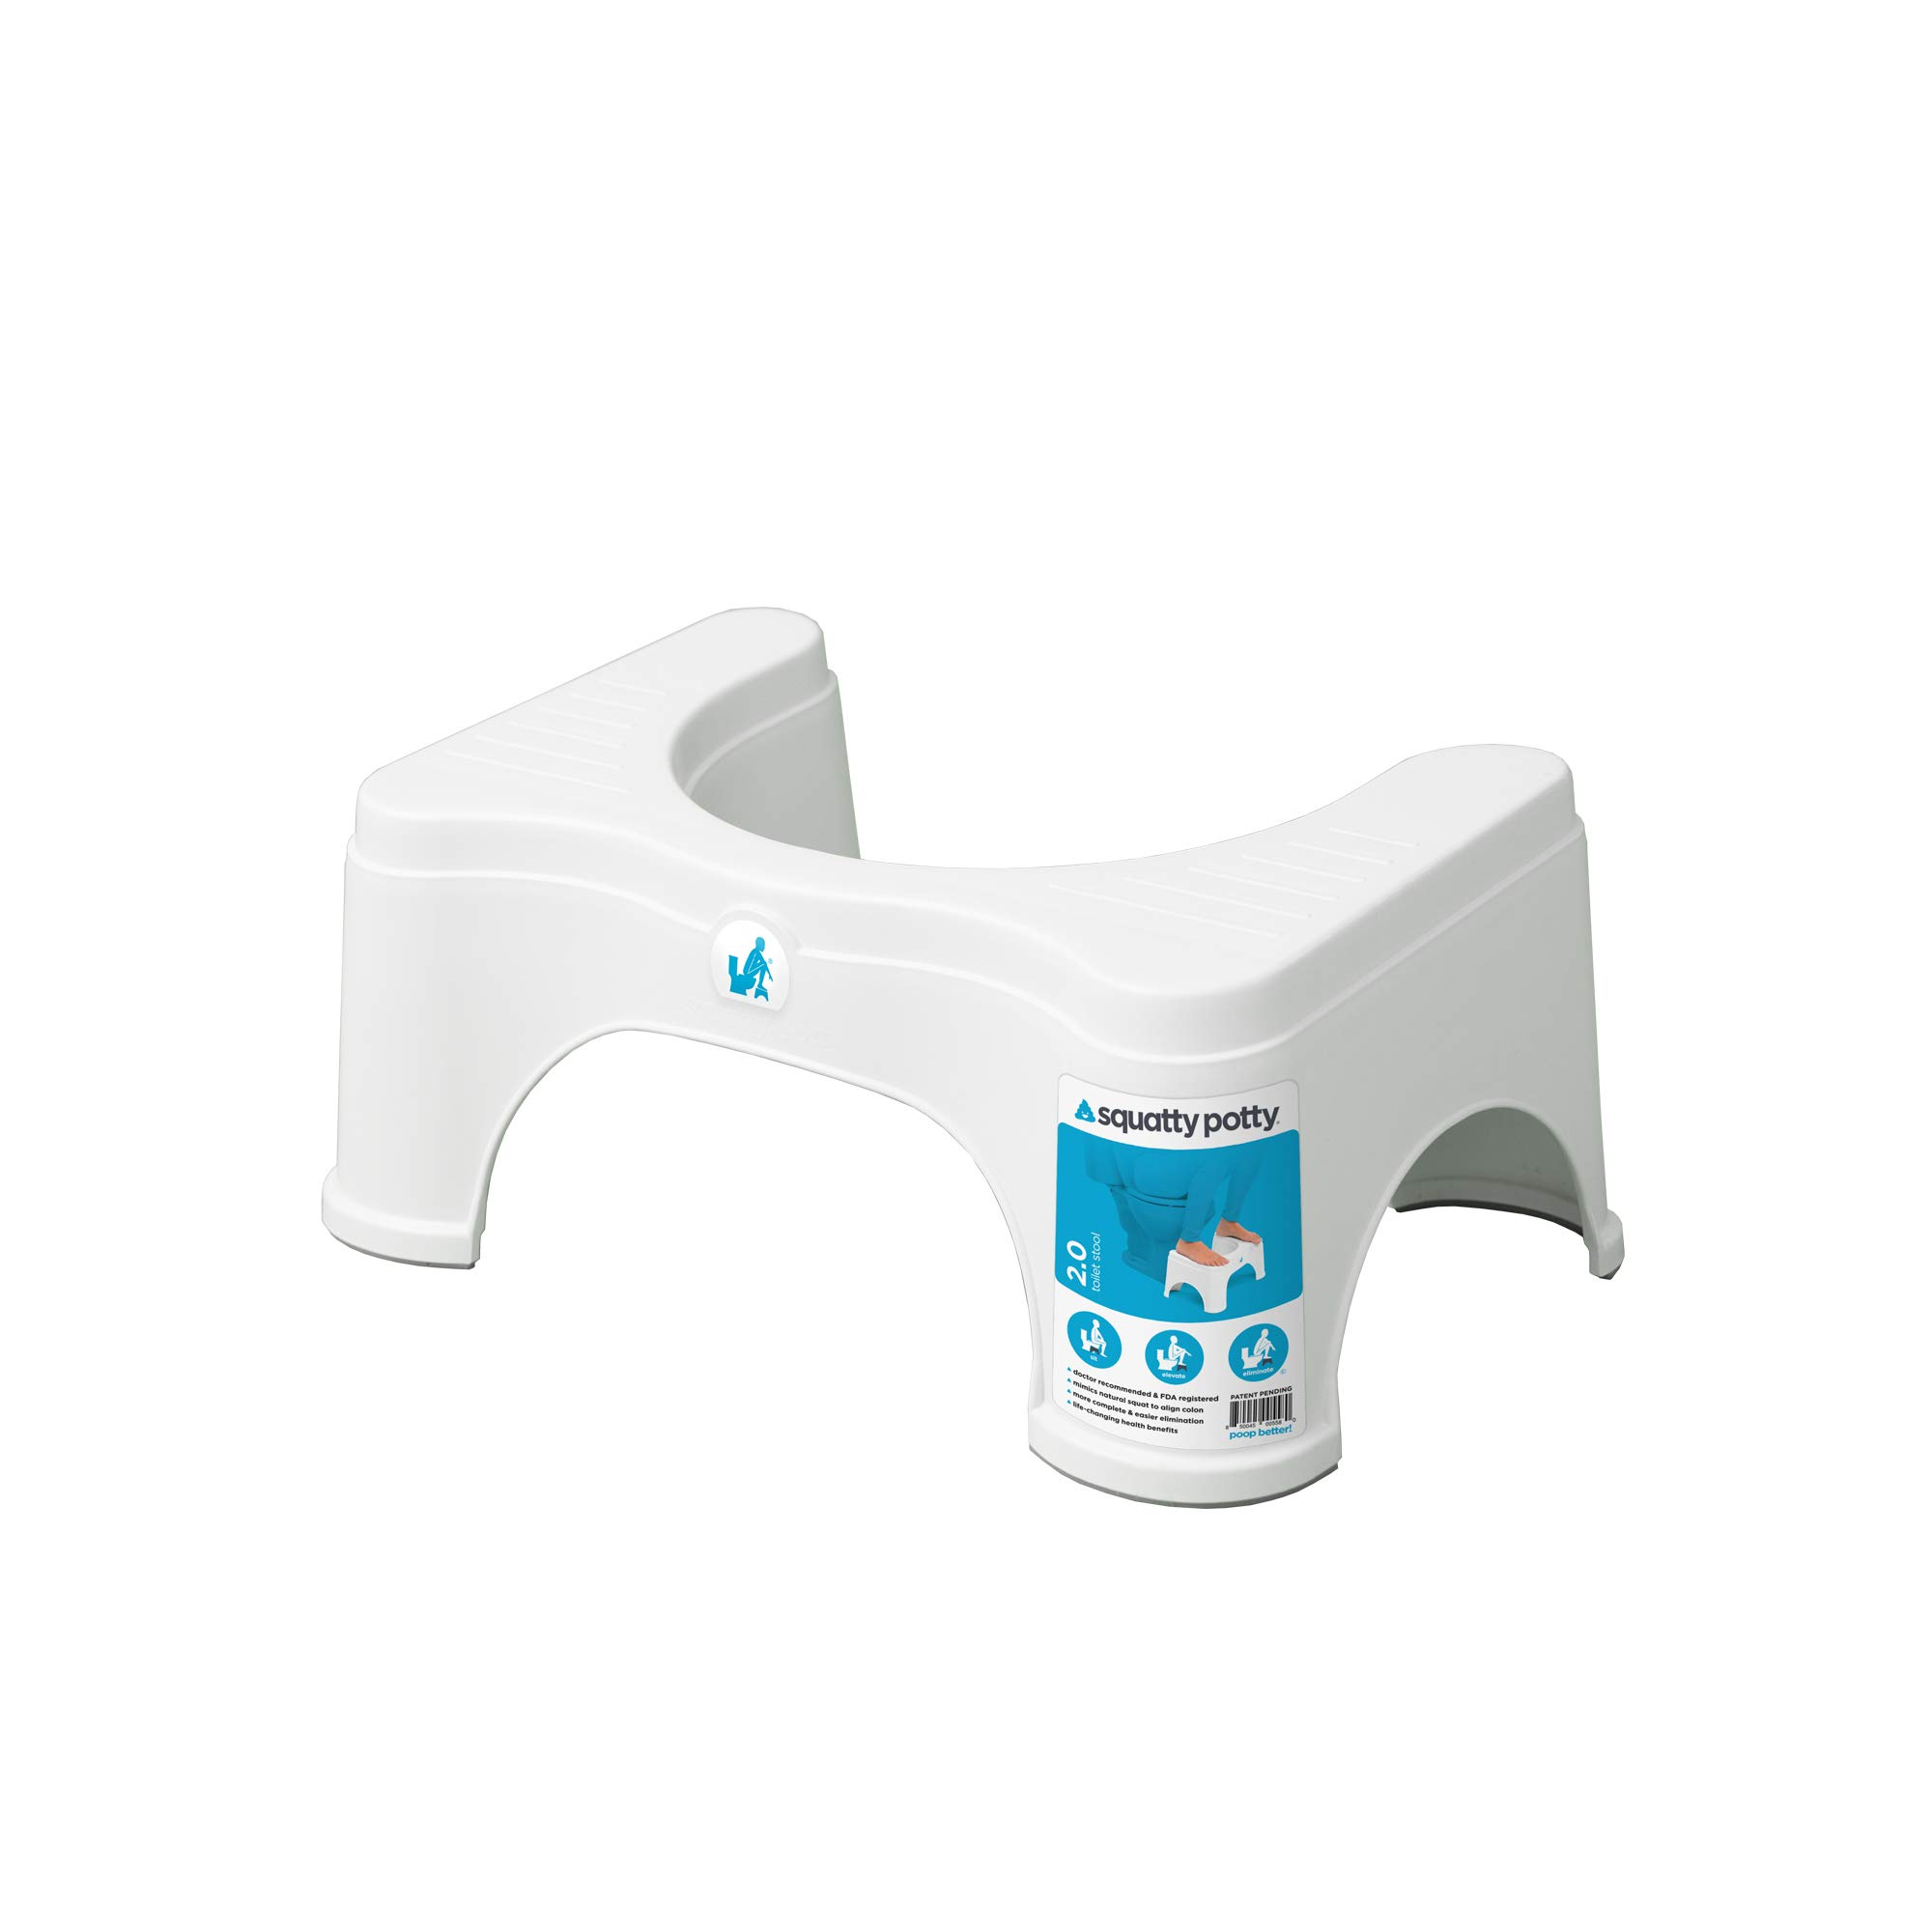 Squatty Potty The Original Bathroom Toilet Stool - 2.0 Base Only, 7 inch Height - White